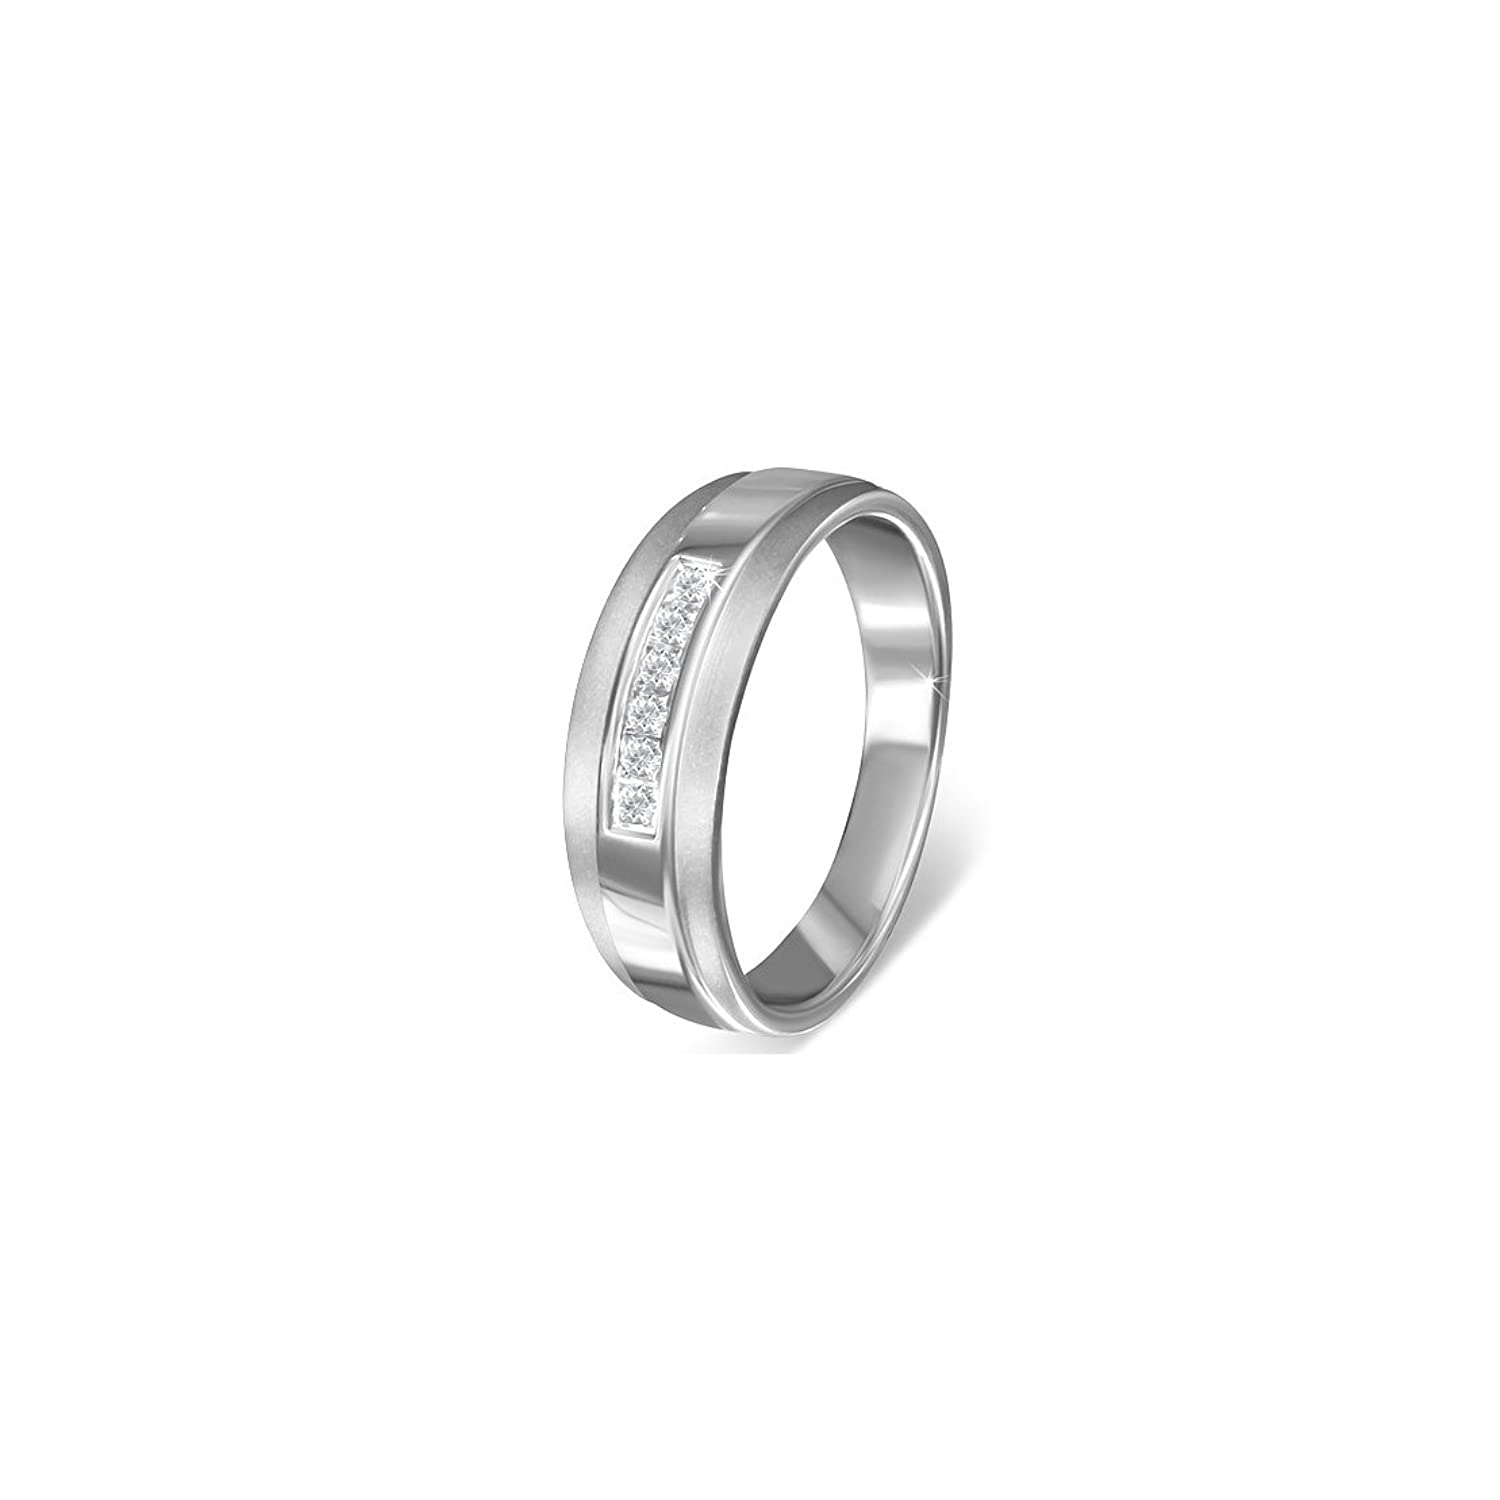 Stainless Steel Satin Finished Pave-Set Band Ring with Clear CZ